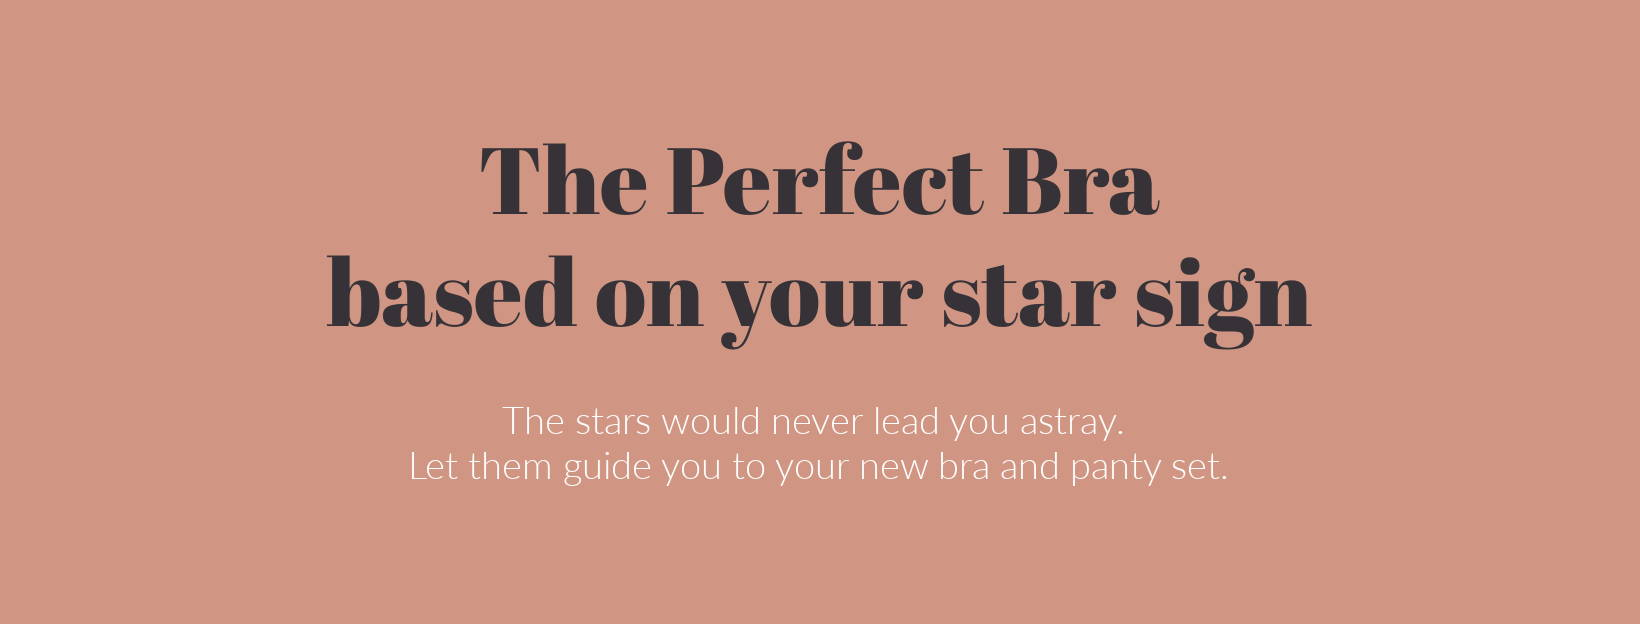 The Perfect Bra based on your Star Sign